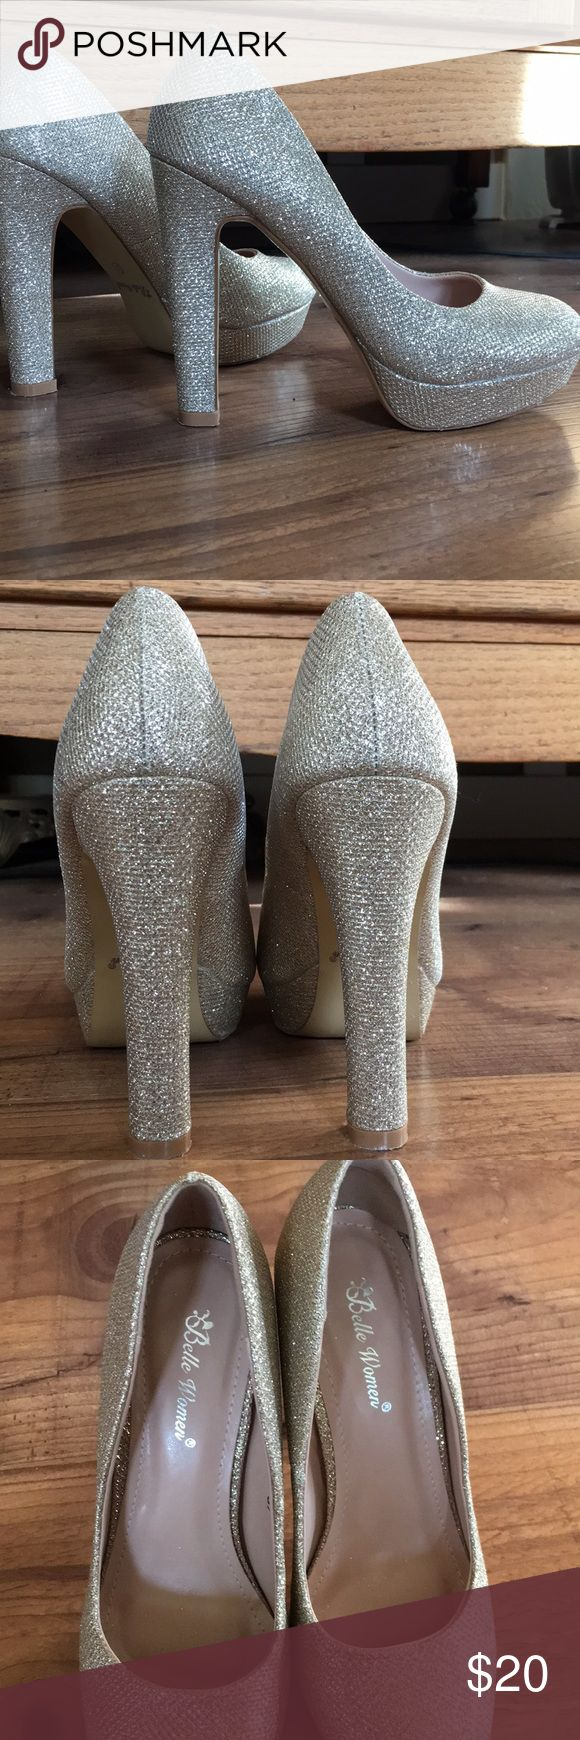 """Sparkly Gold Pumps Very sparkly pumps. Worn once to a wedding for 2 hours tops. 4"""" heel with 1"""" platform. Belle Women Shoes Heels"""